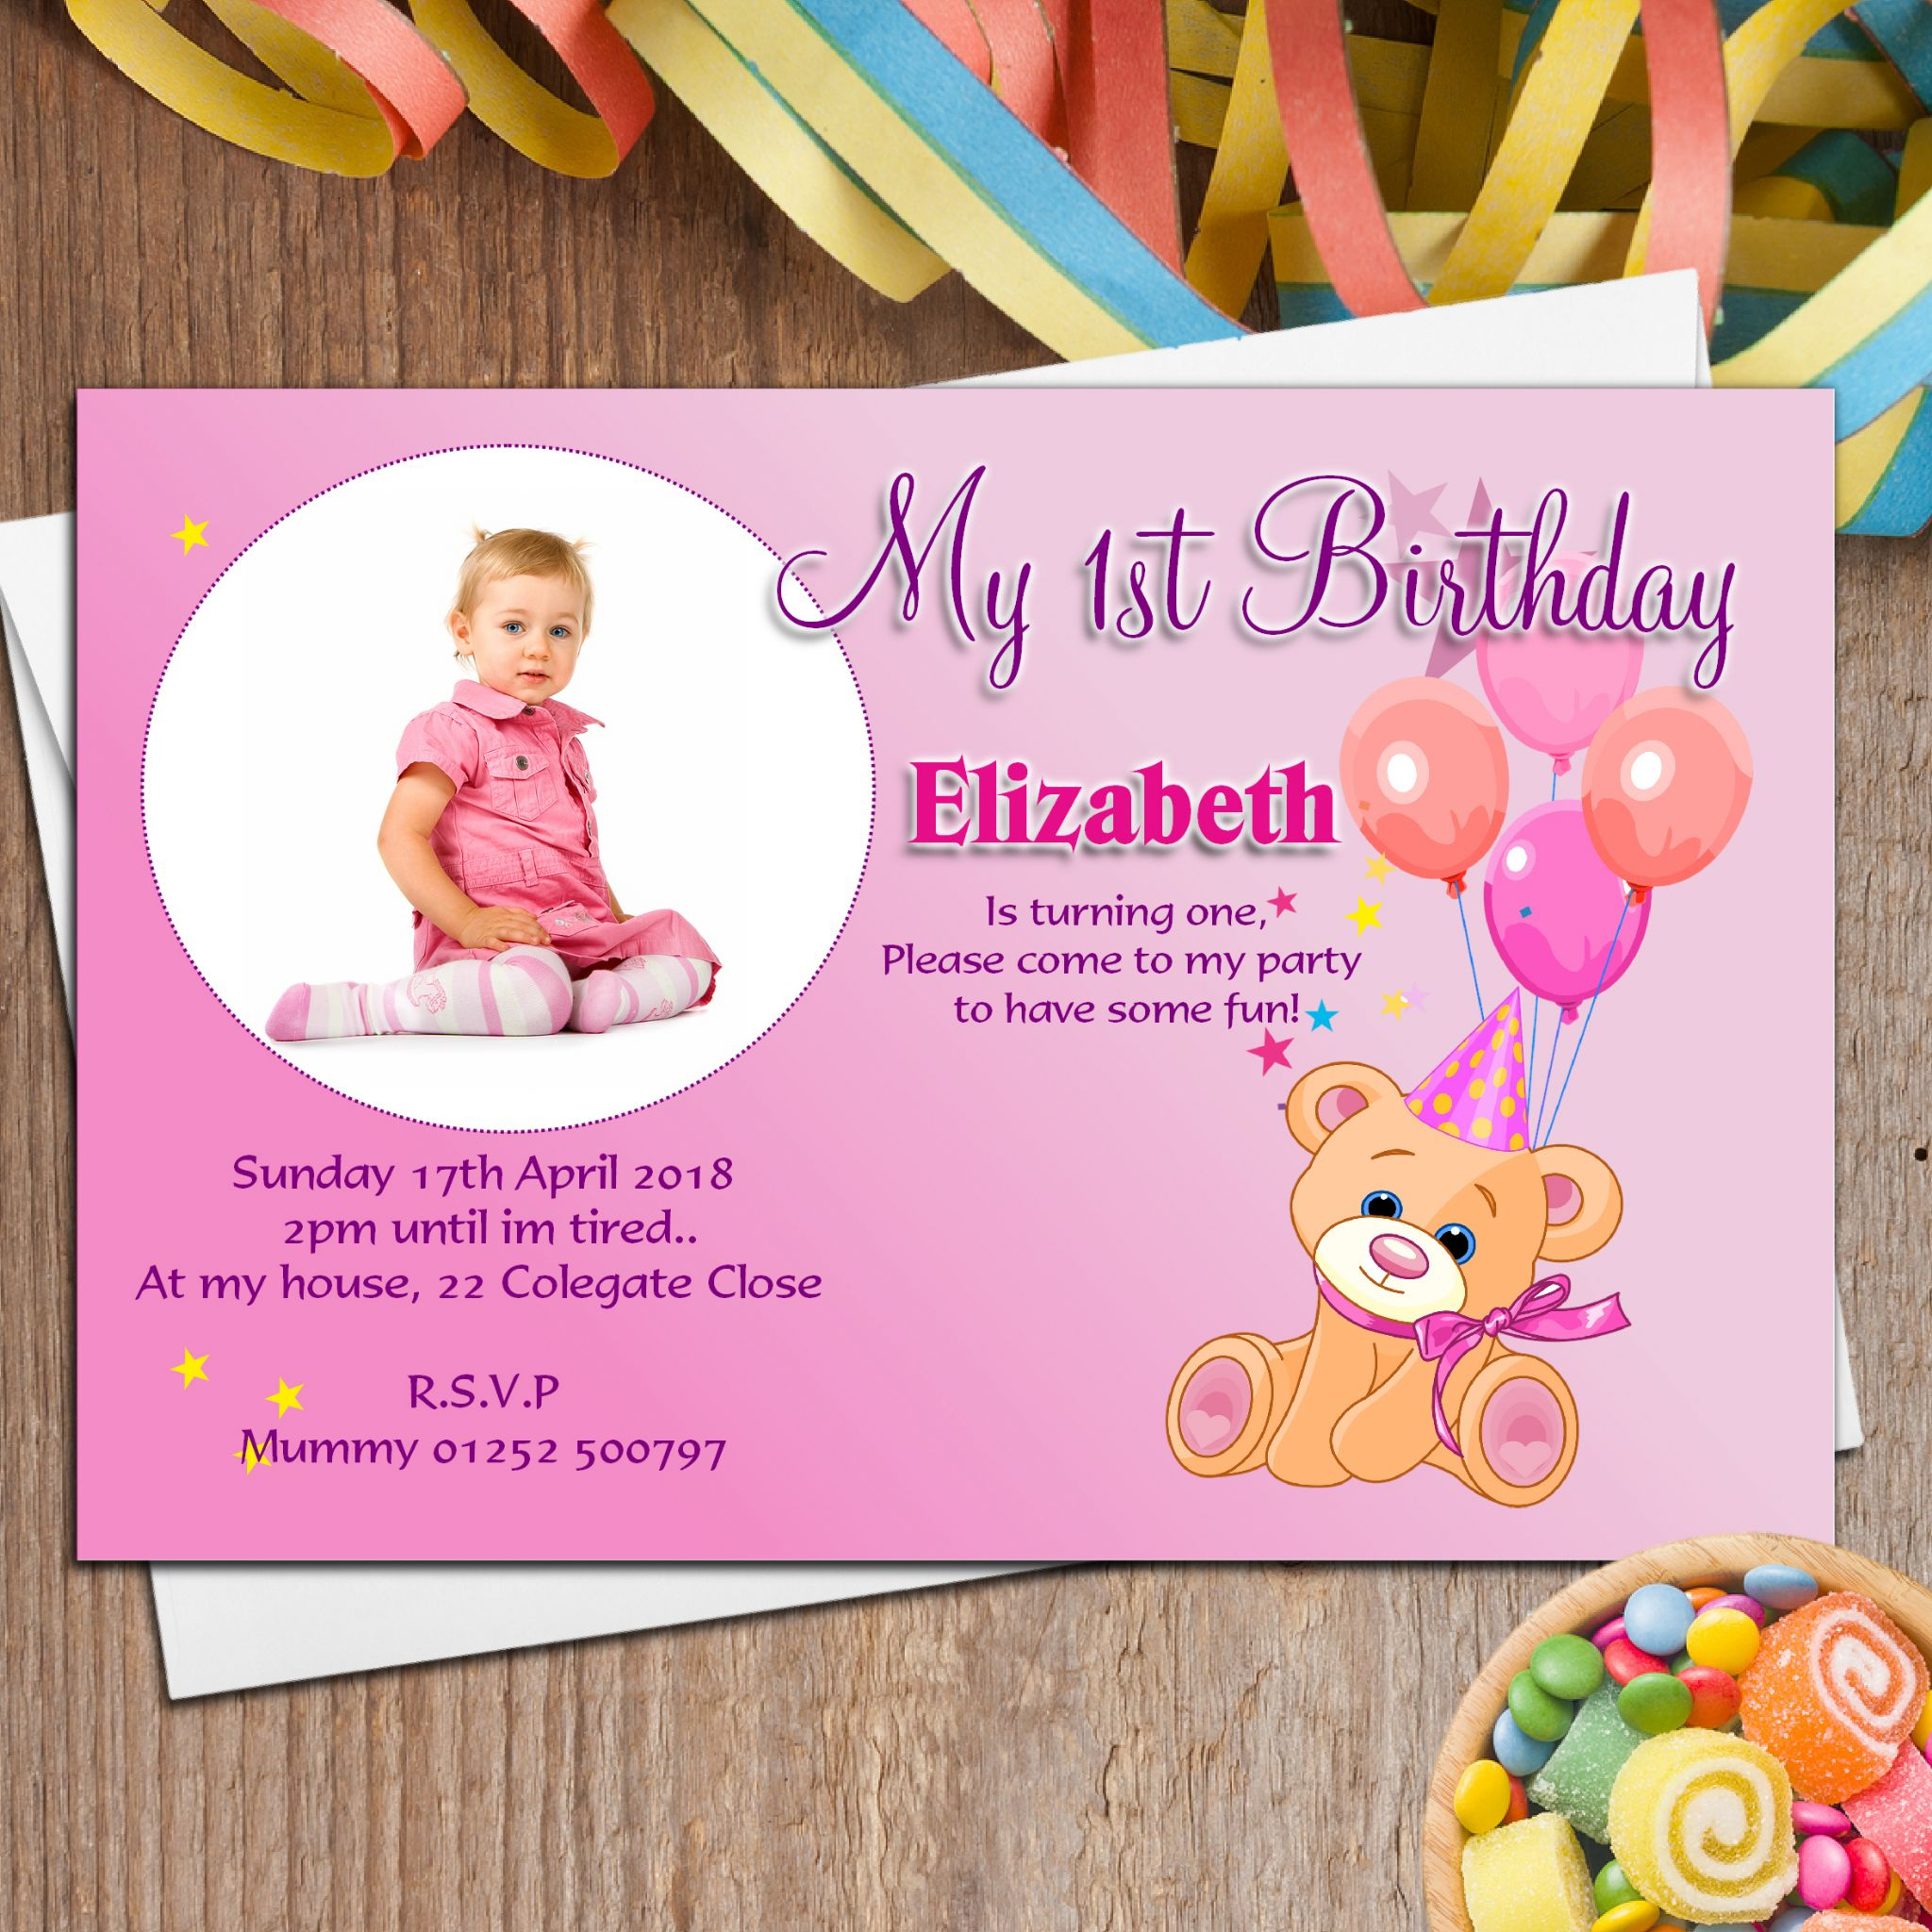 best birthday invitation card design ; 17Th-Birthday-Invitations-to-inspire-you-how-to-create-the-birthday-Invitation-with-the-best-way-7